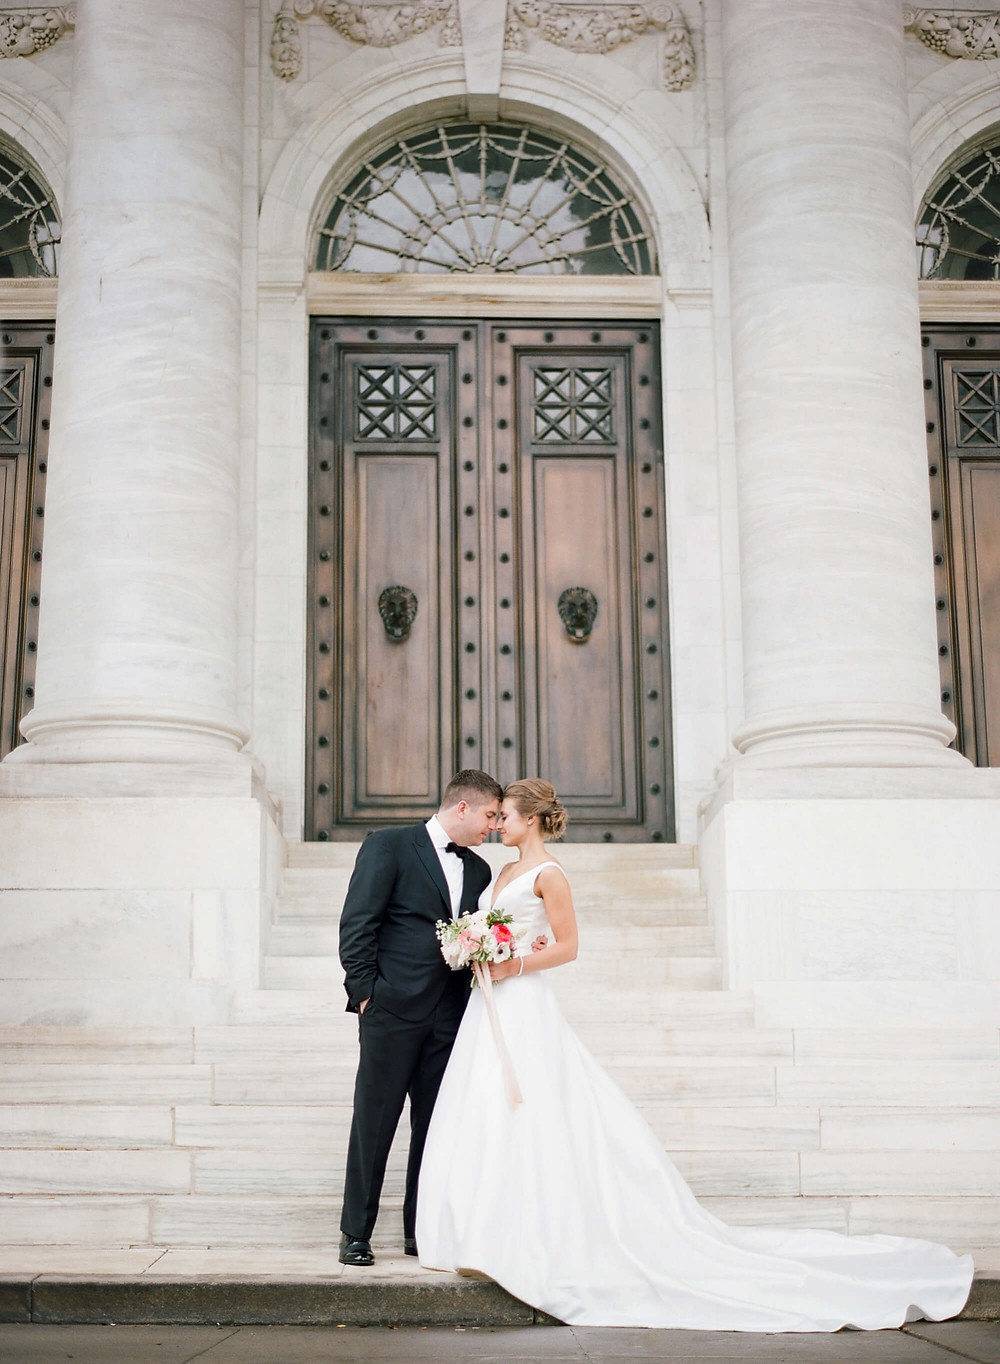 DAR constitution hall wedding